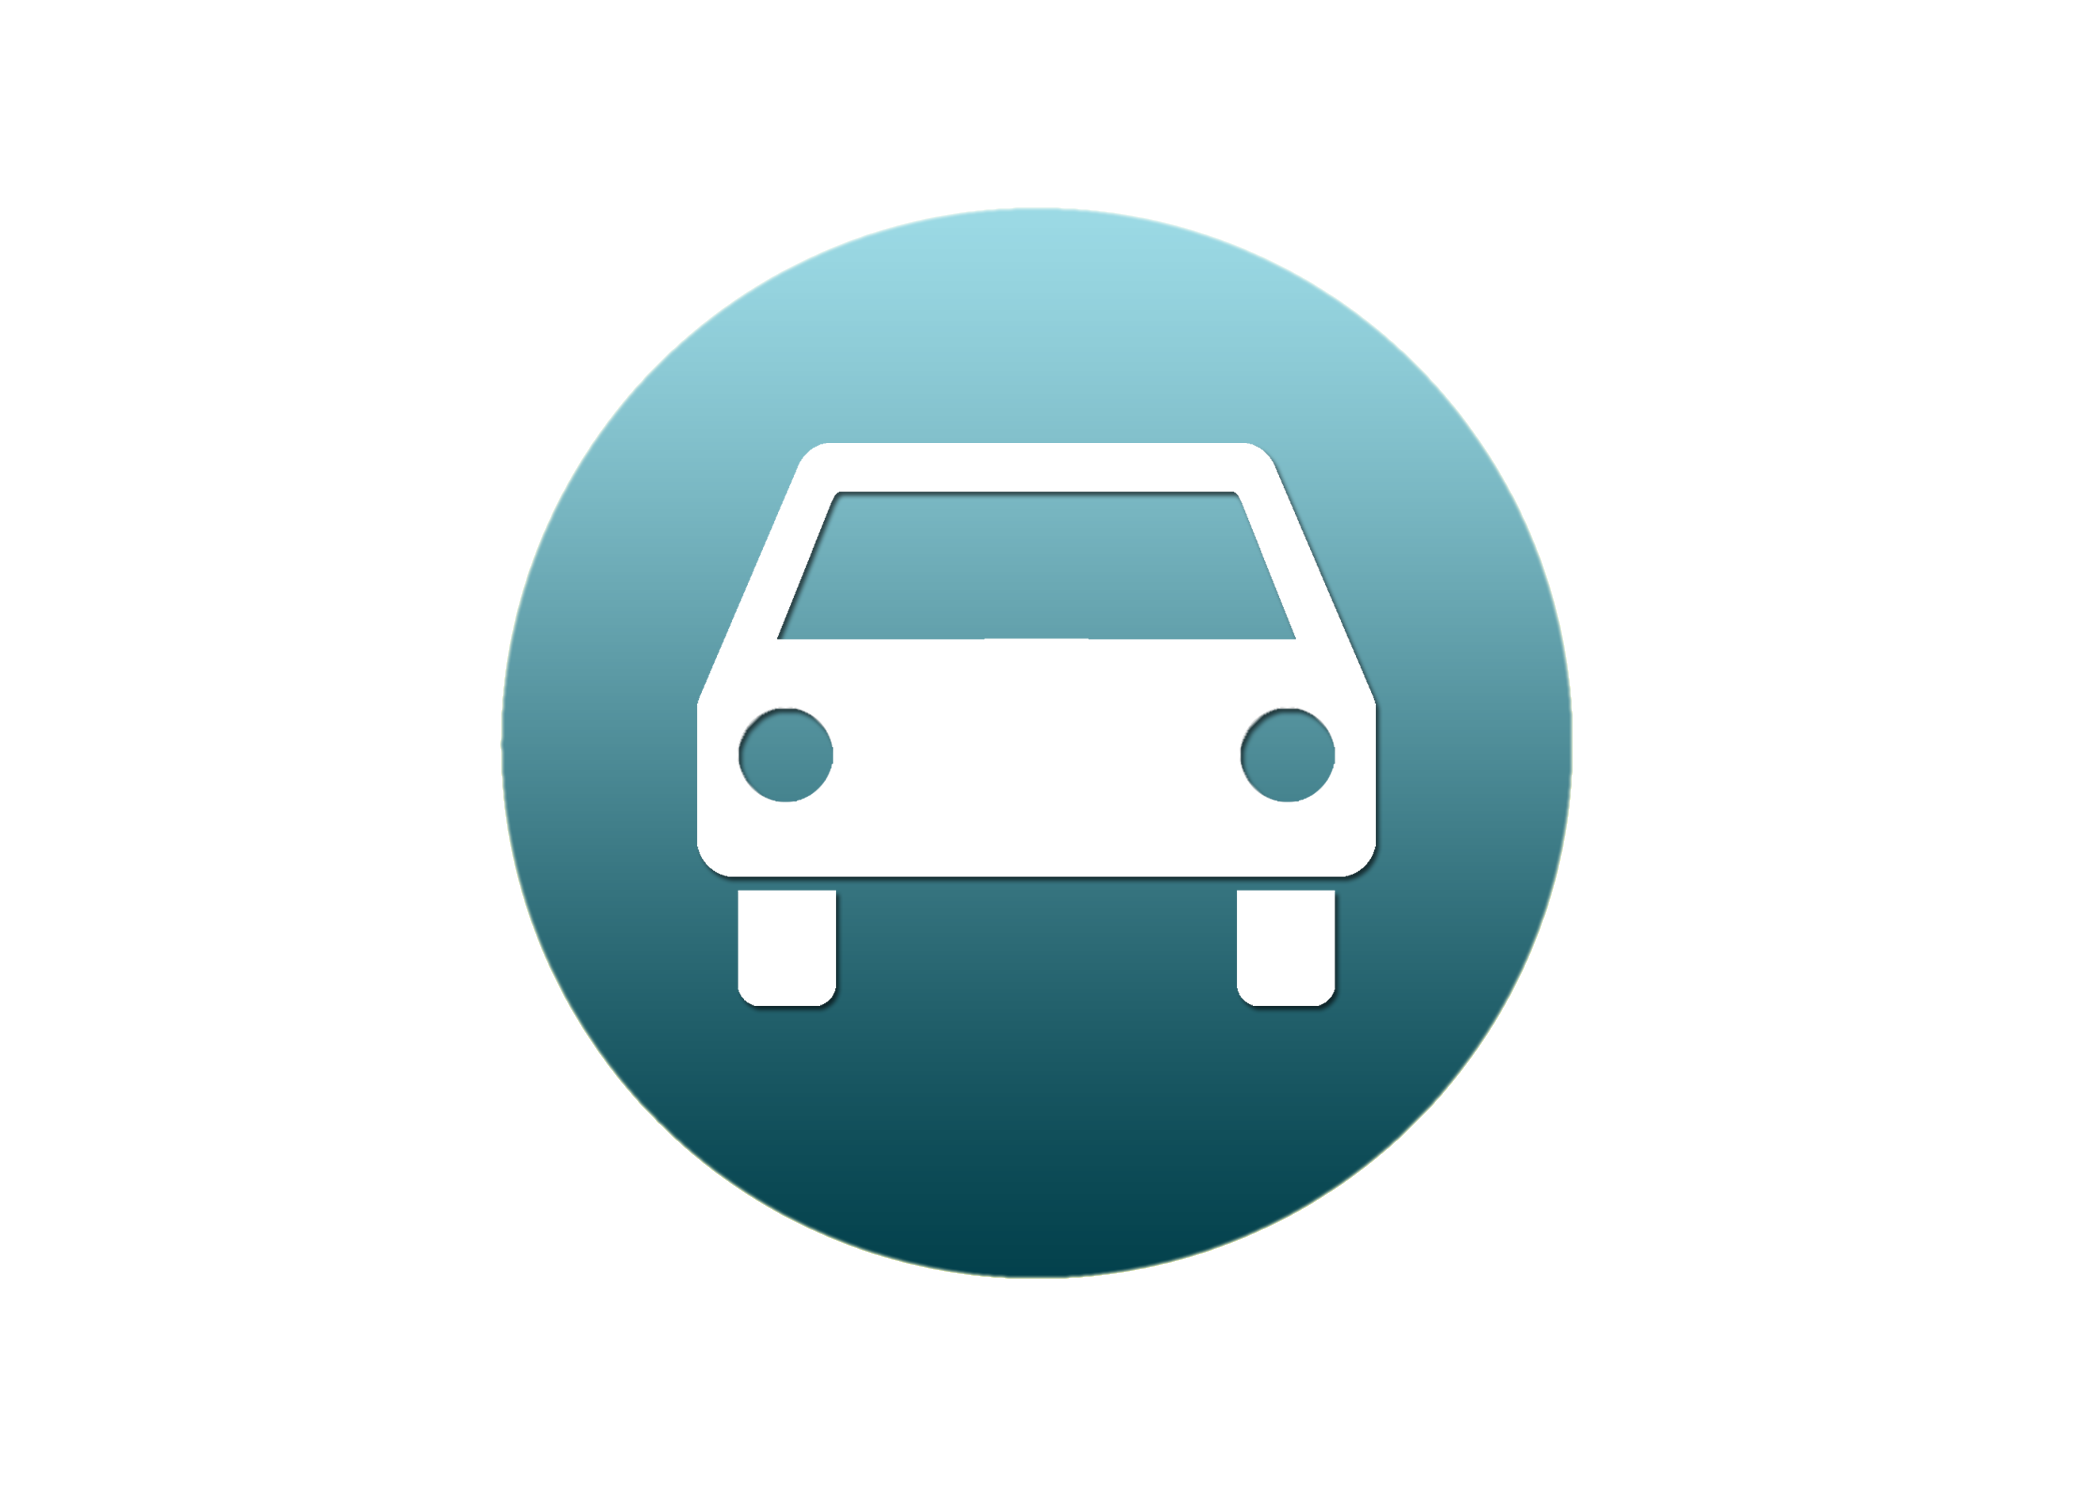 insurance fraud car icon